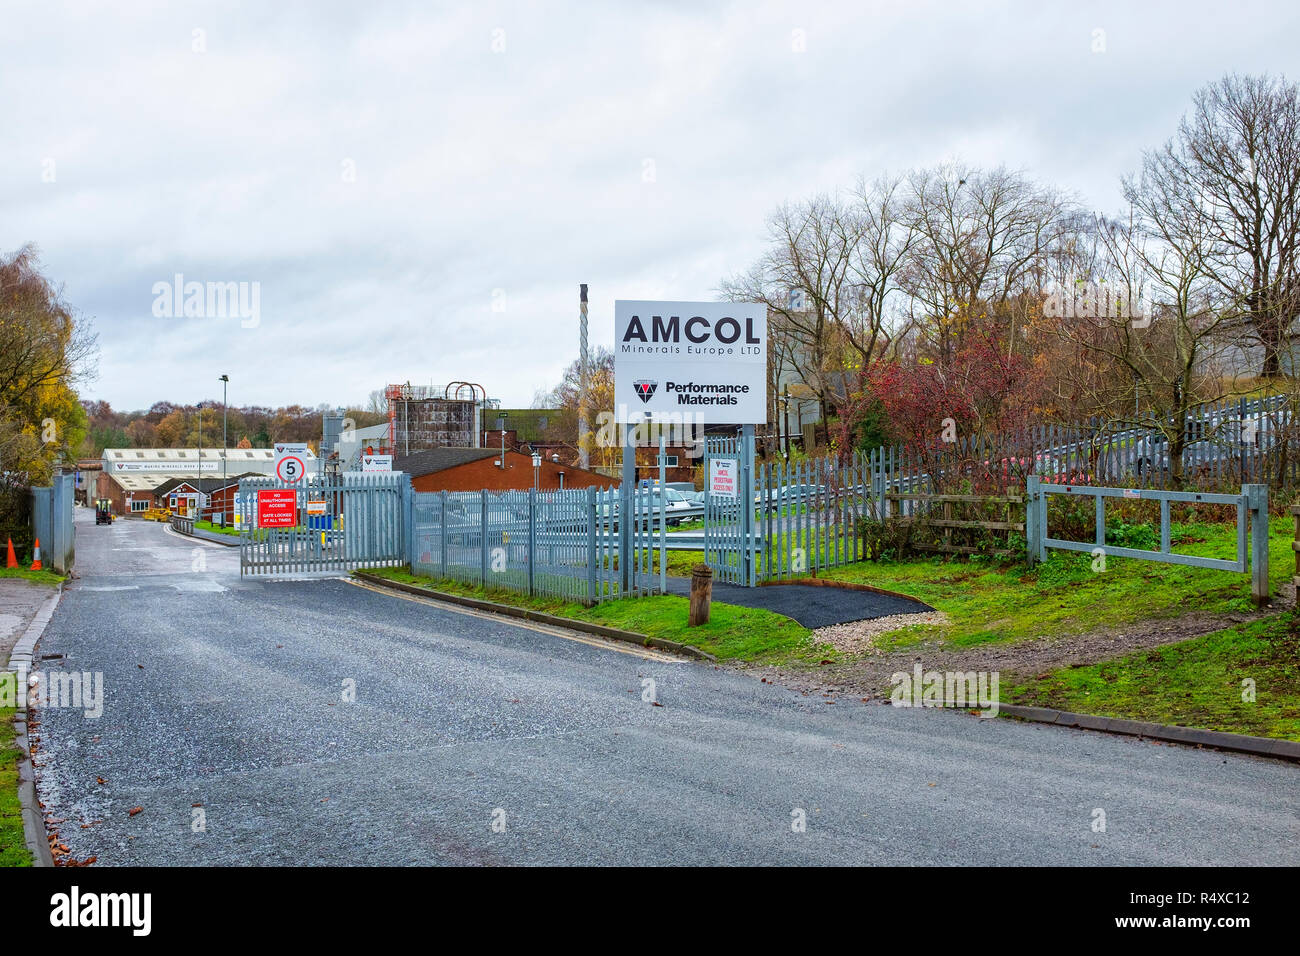 Amcol Mineralien Europe Ltd. in Winsford Cheshire UK Stockbild